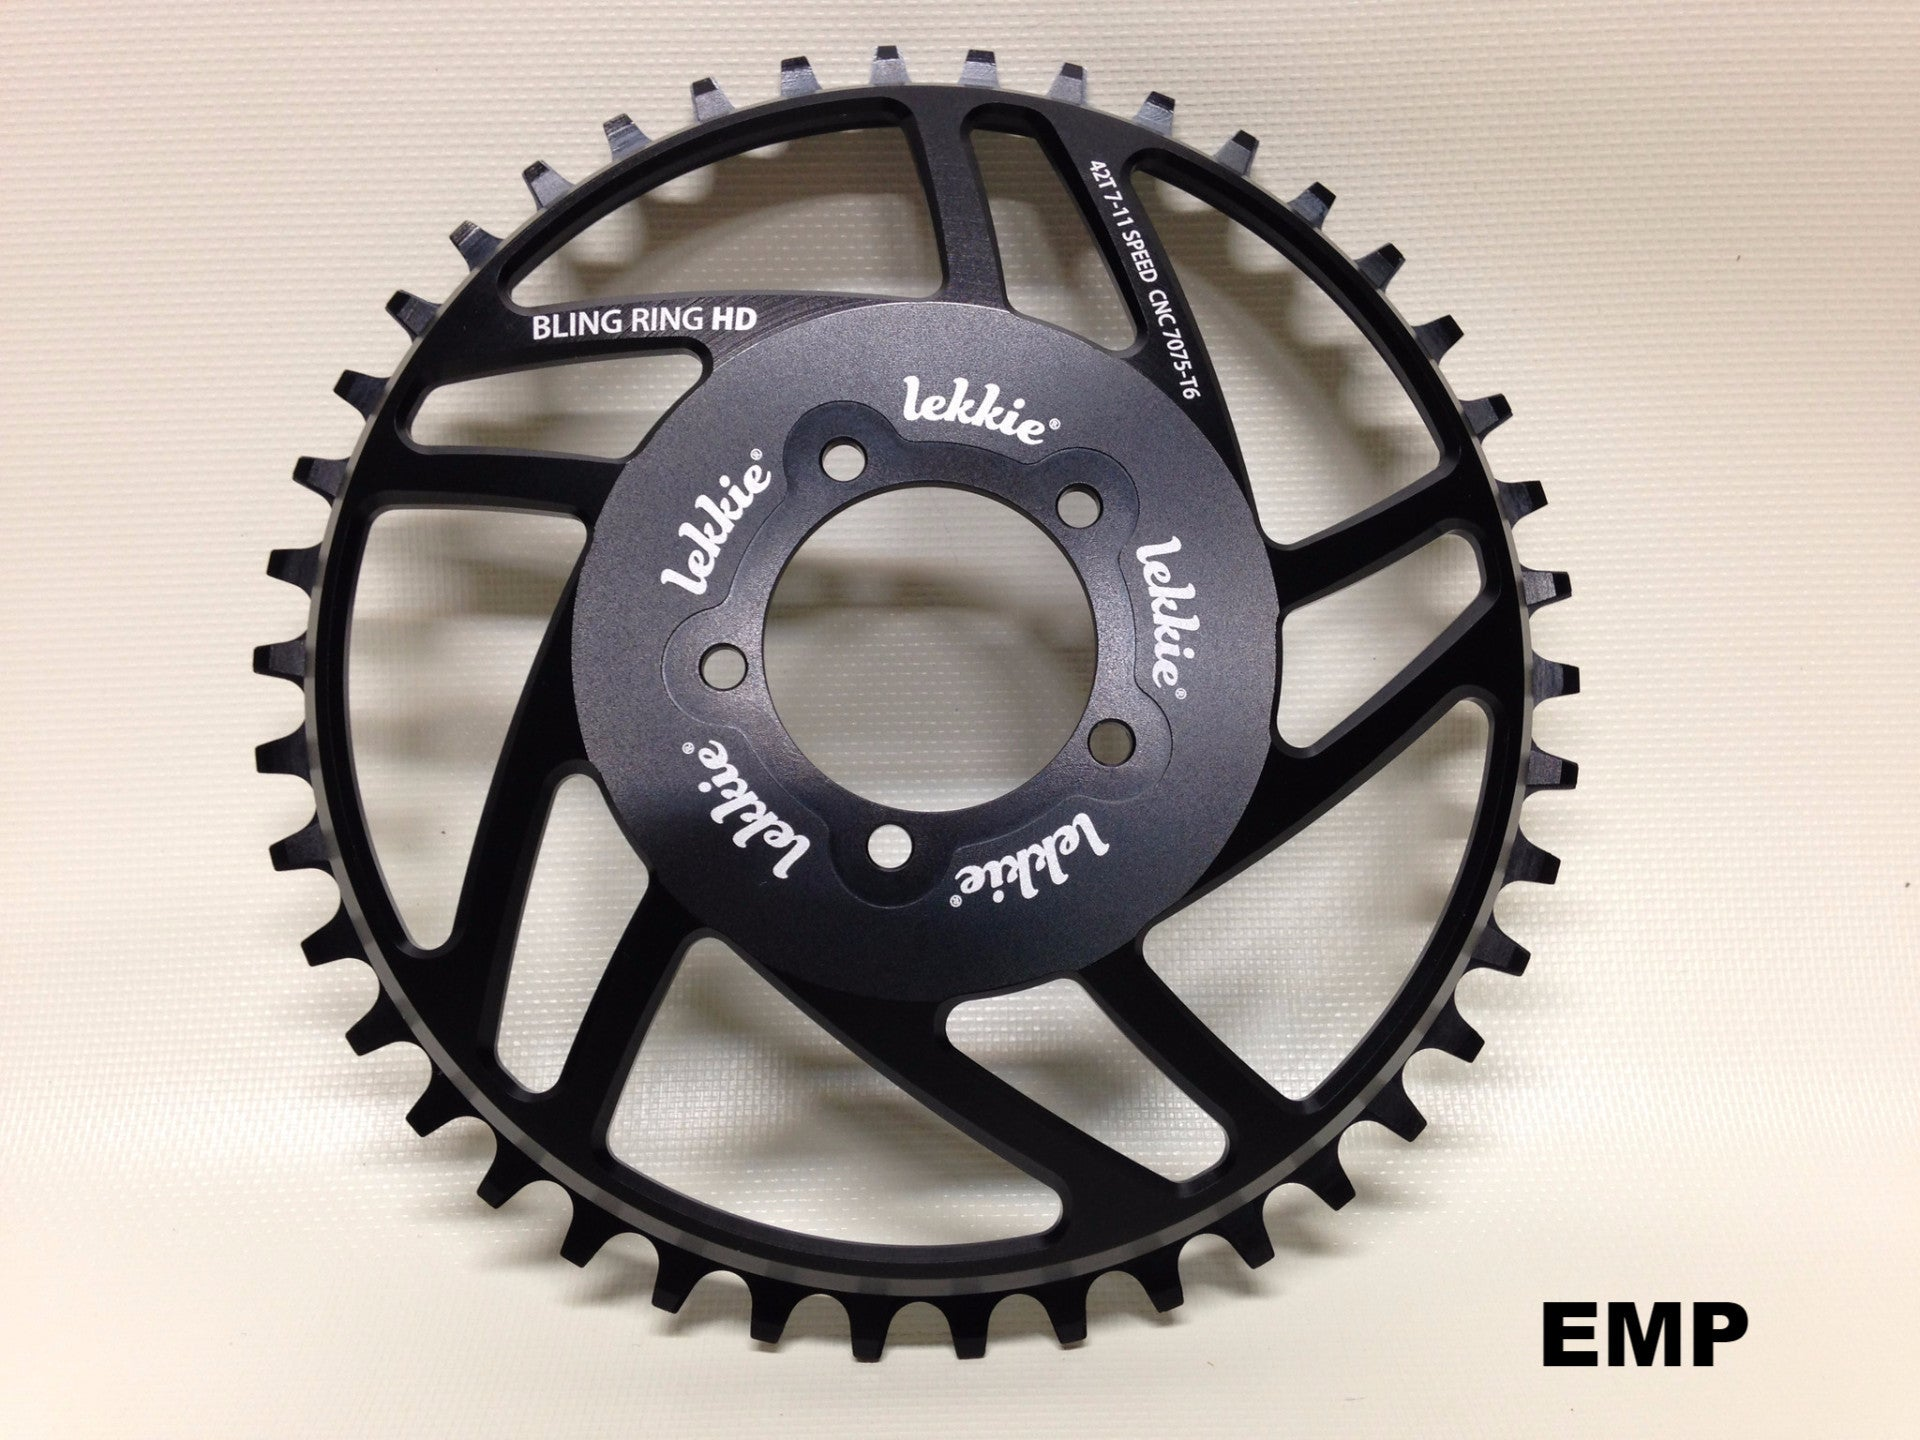 Lekkie Bling Ring HD for Bafang BBSHD   EMPowered Cycles